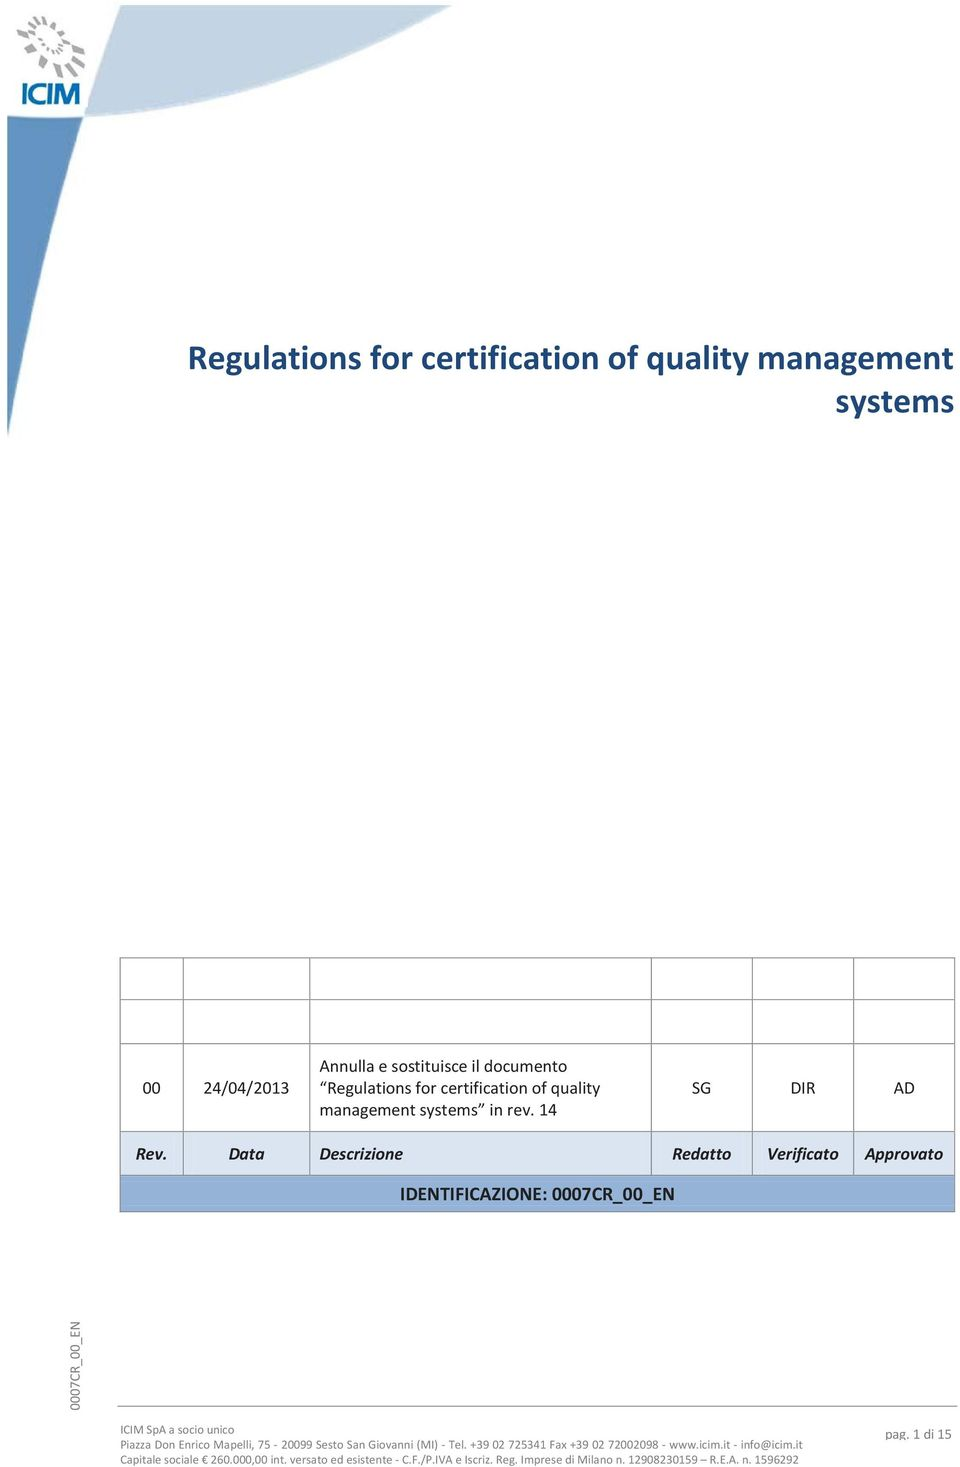 certification of quality management systems in rev.